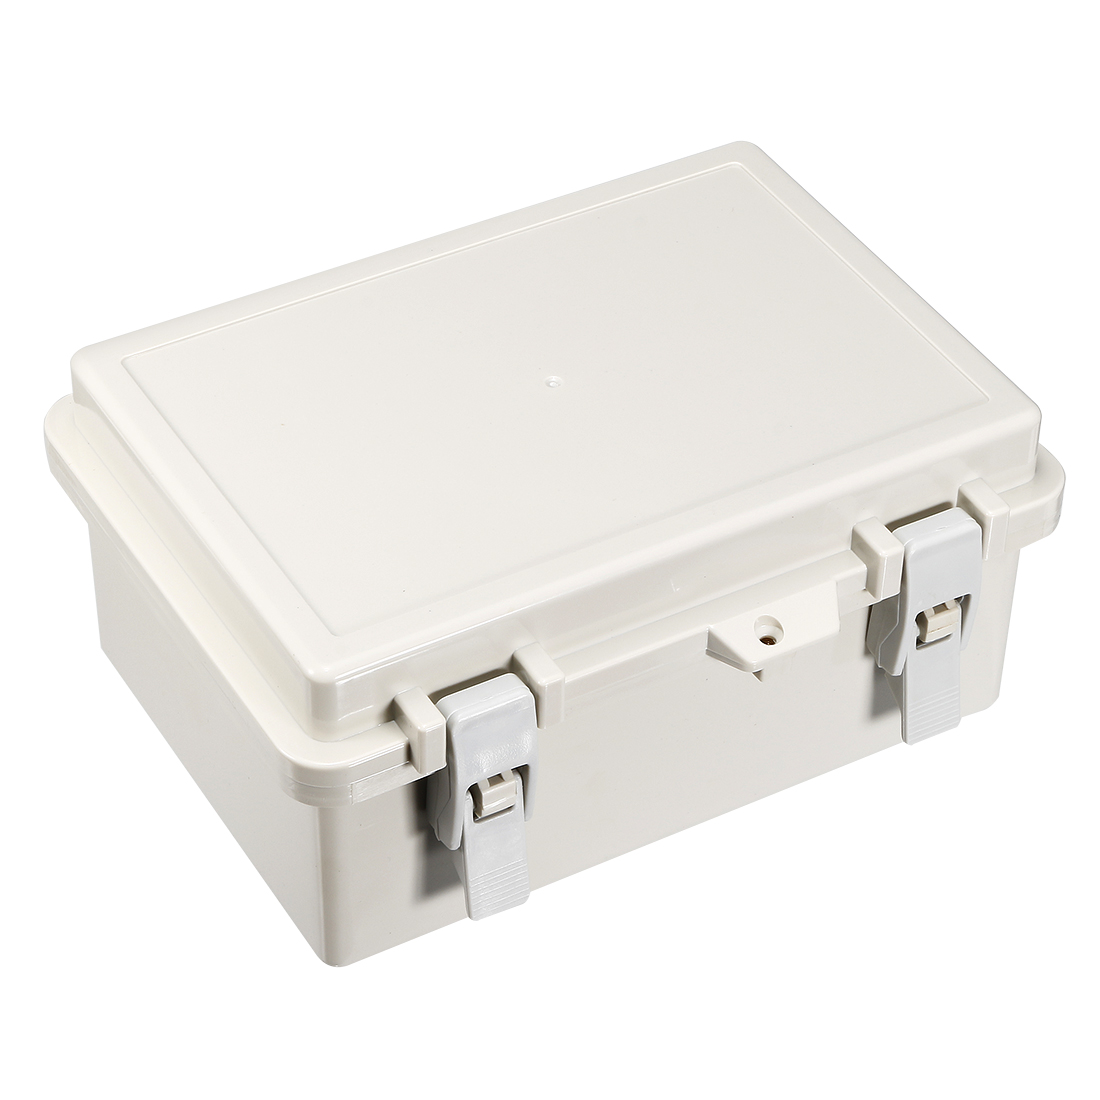 "8.66"" x 5.91"" x 4.33""(220mm x 150mm x 110mm) ABS Junction Box Universal Project Enclosure"